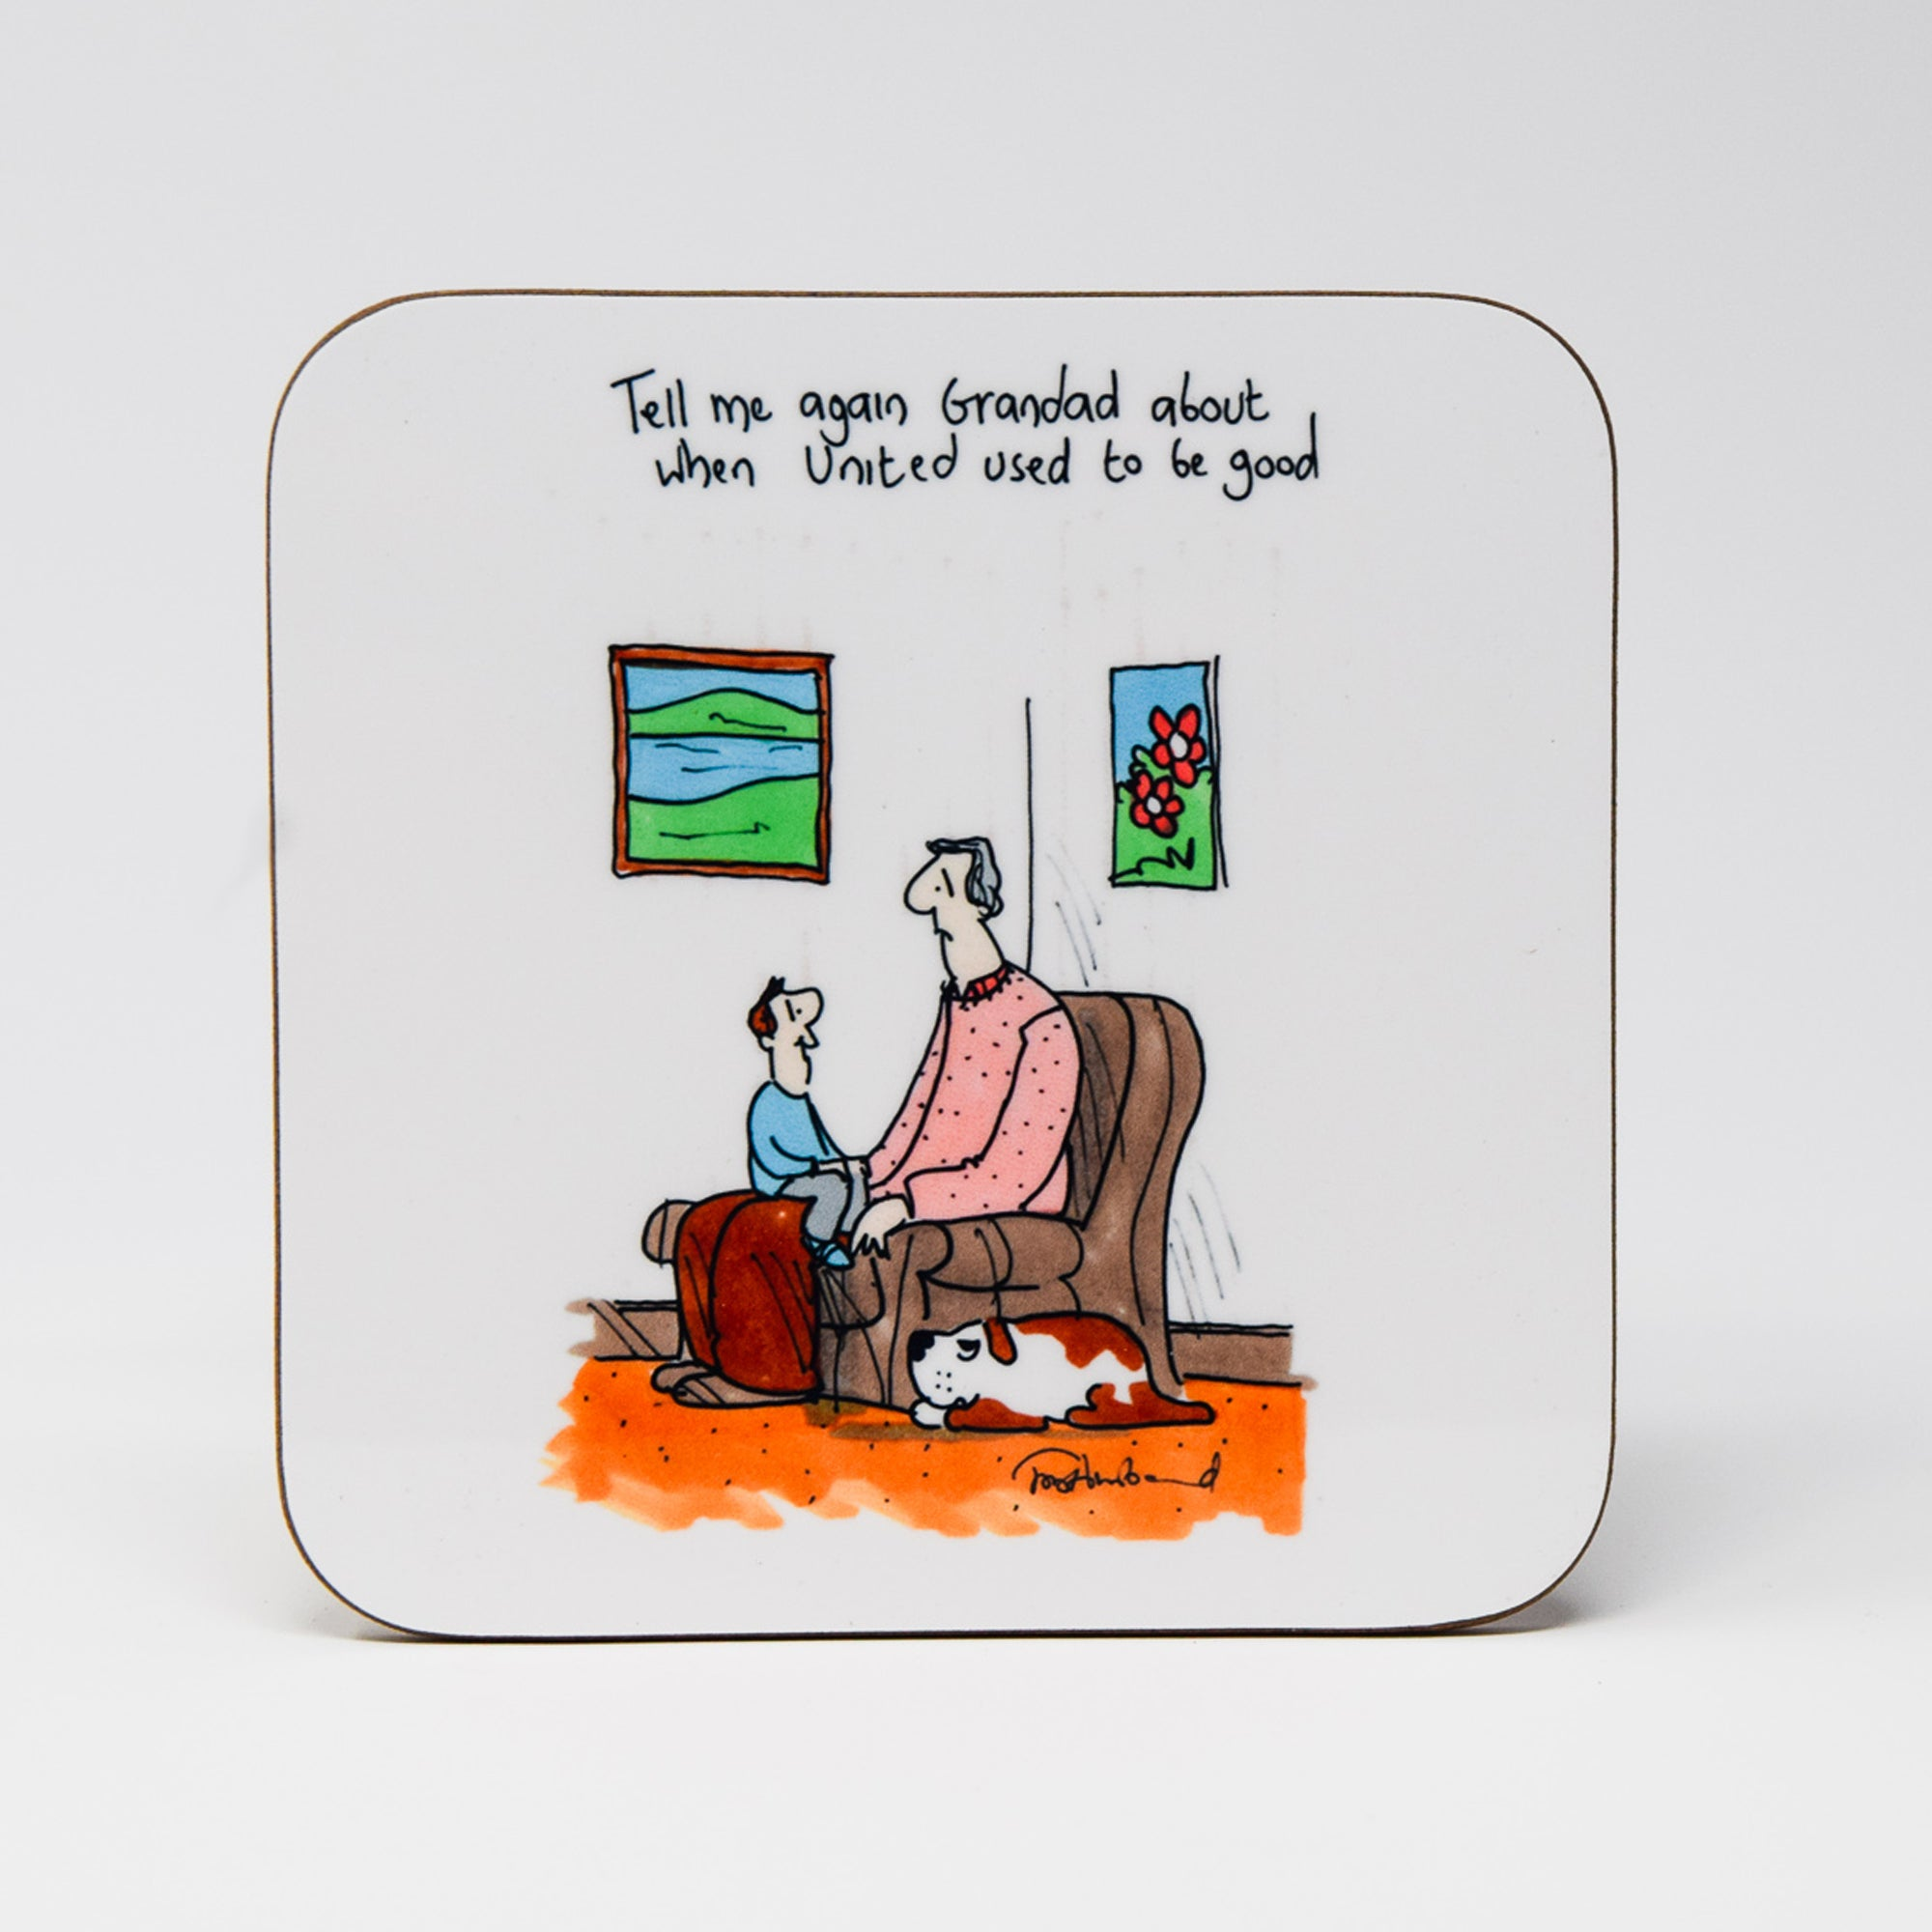 When United Used to be Good Coaster by Tony Husband